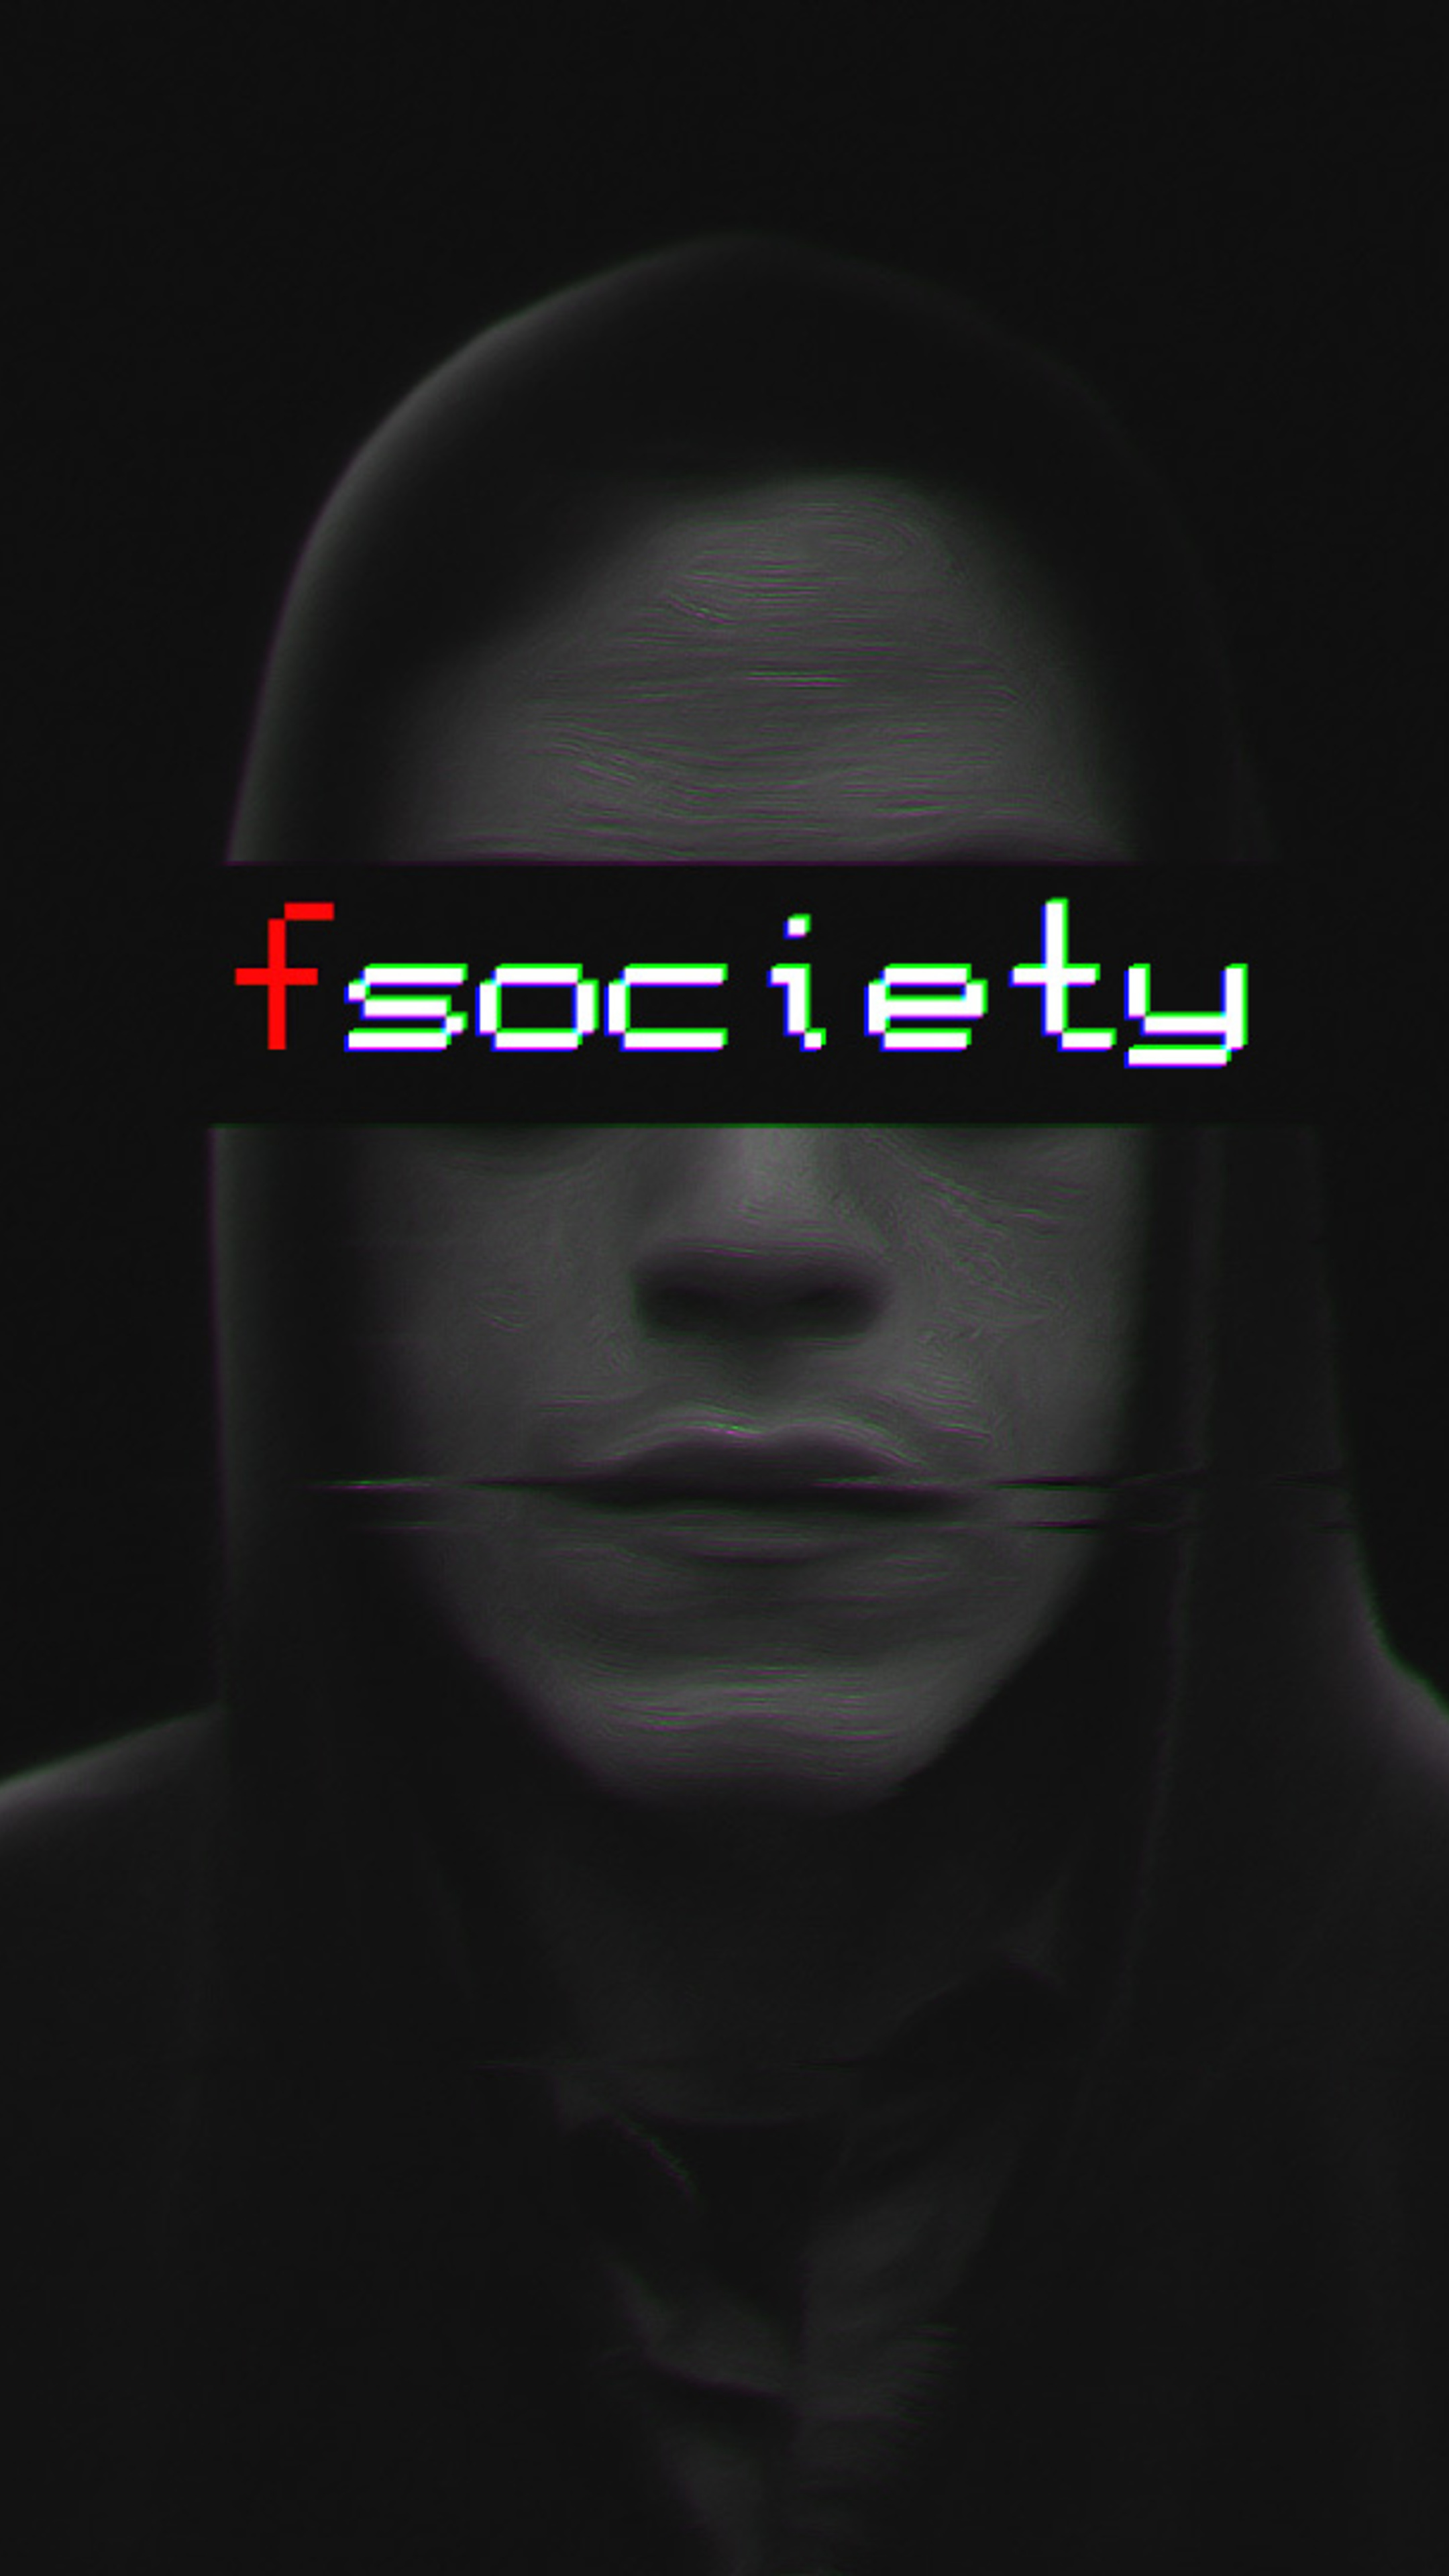 fsociety-mr-robot-4n.jpg